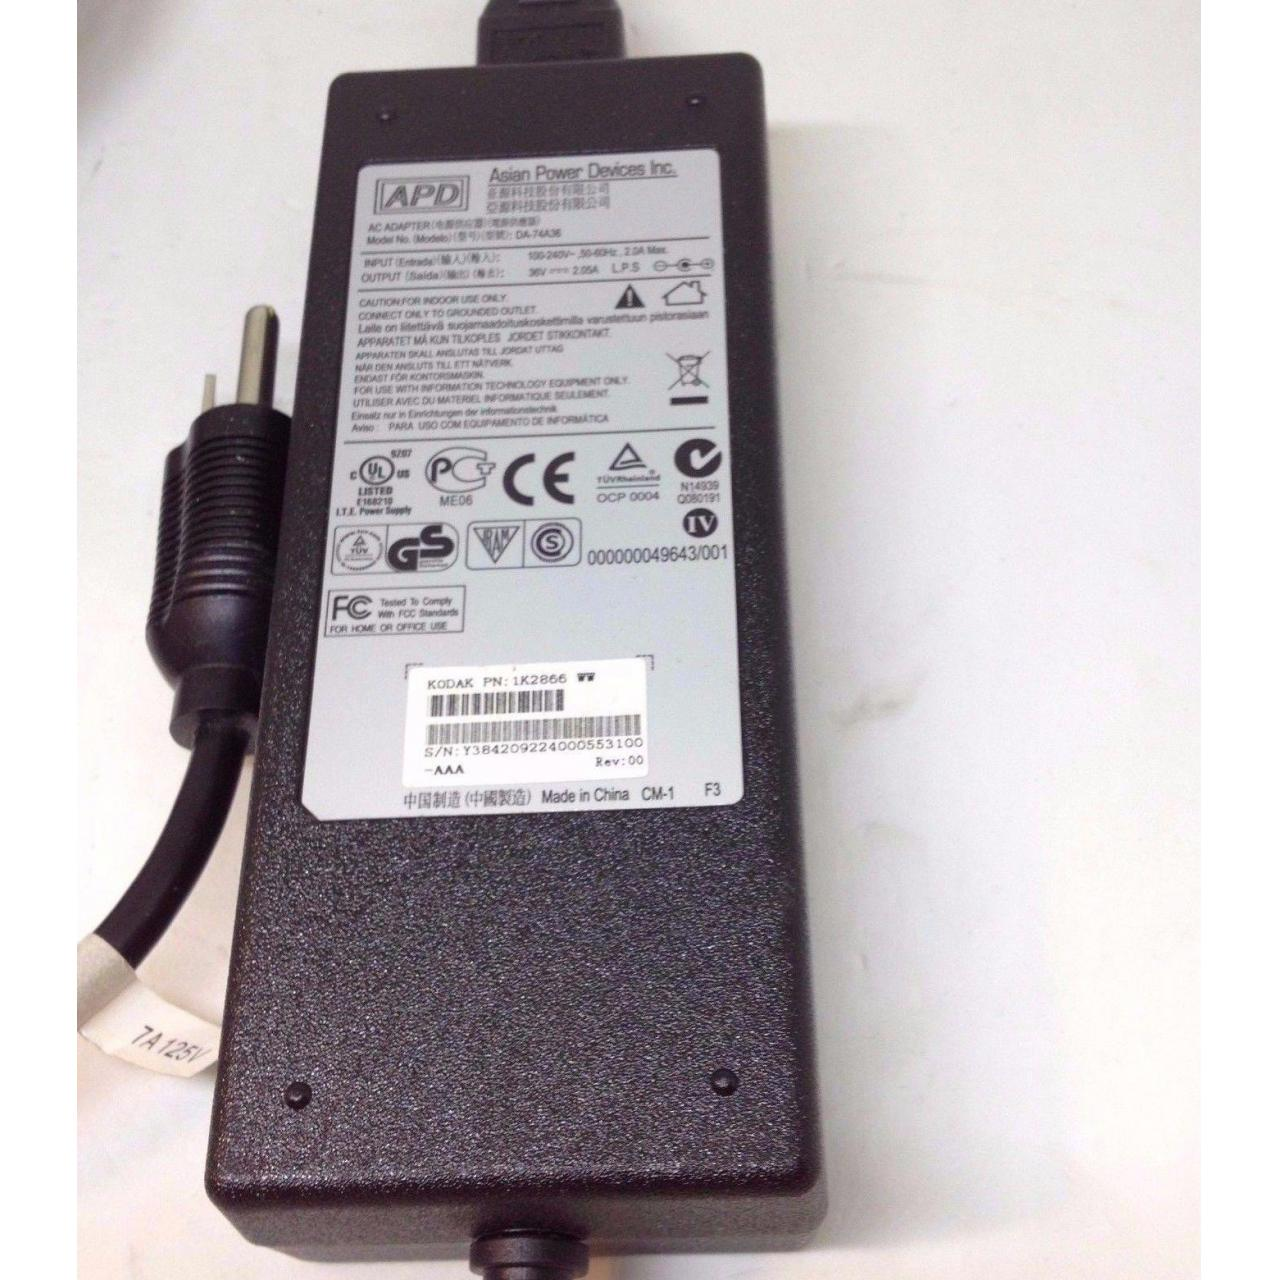 Wholesale Gneuine ASIAN POWER DEVICES INC AC ADAPTER DA-74A36 36V 2.05A power supply from china suppliers